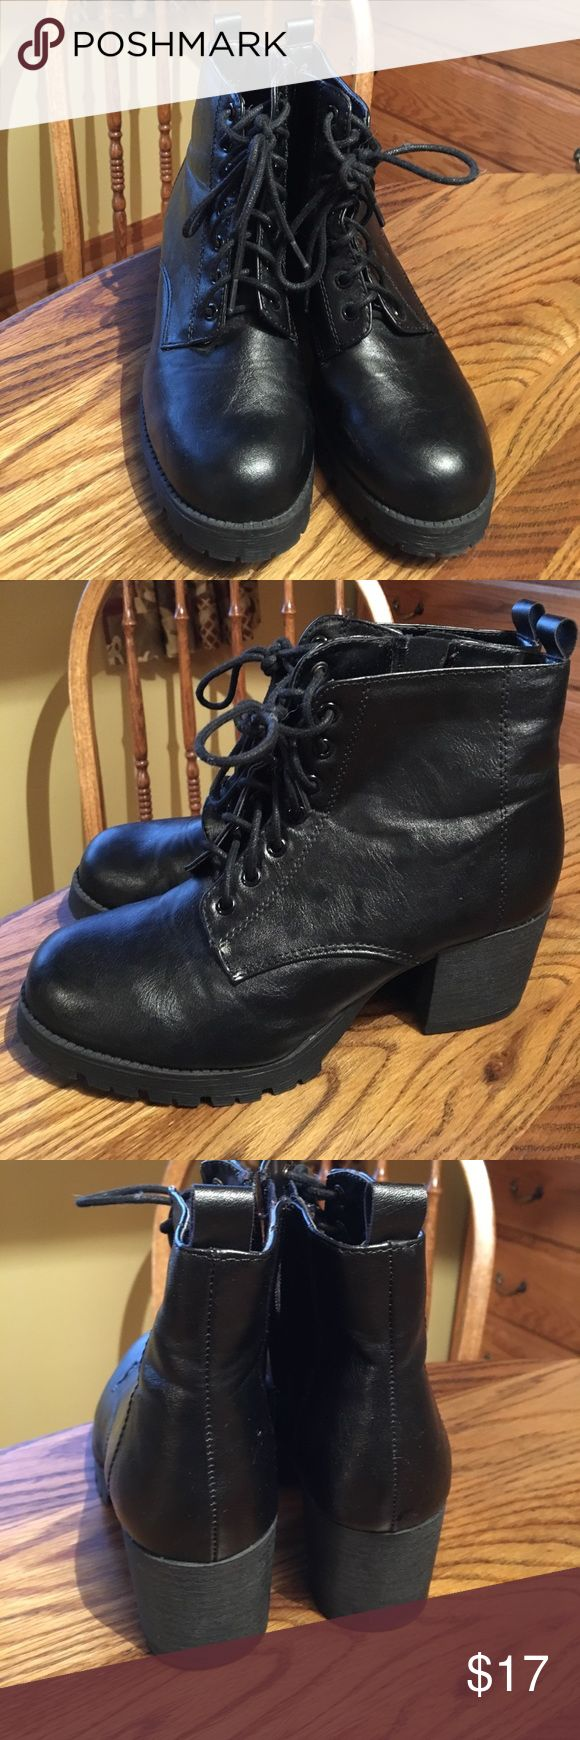 Tilly's Soda Black Lace Up Heeled Boots Super cute! Basically like new just worn a few times. Look like Steve maddens super cute 😩😩. Super cute and edgy and nice to go out in! Even though they are heeled they are super comfortable. Soda Shoes Heeled Boots